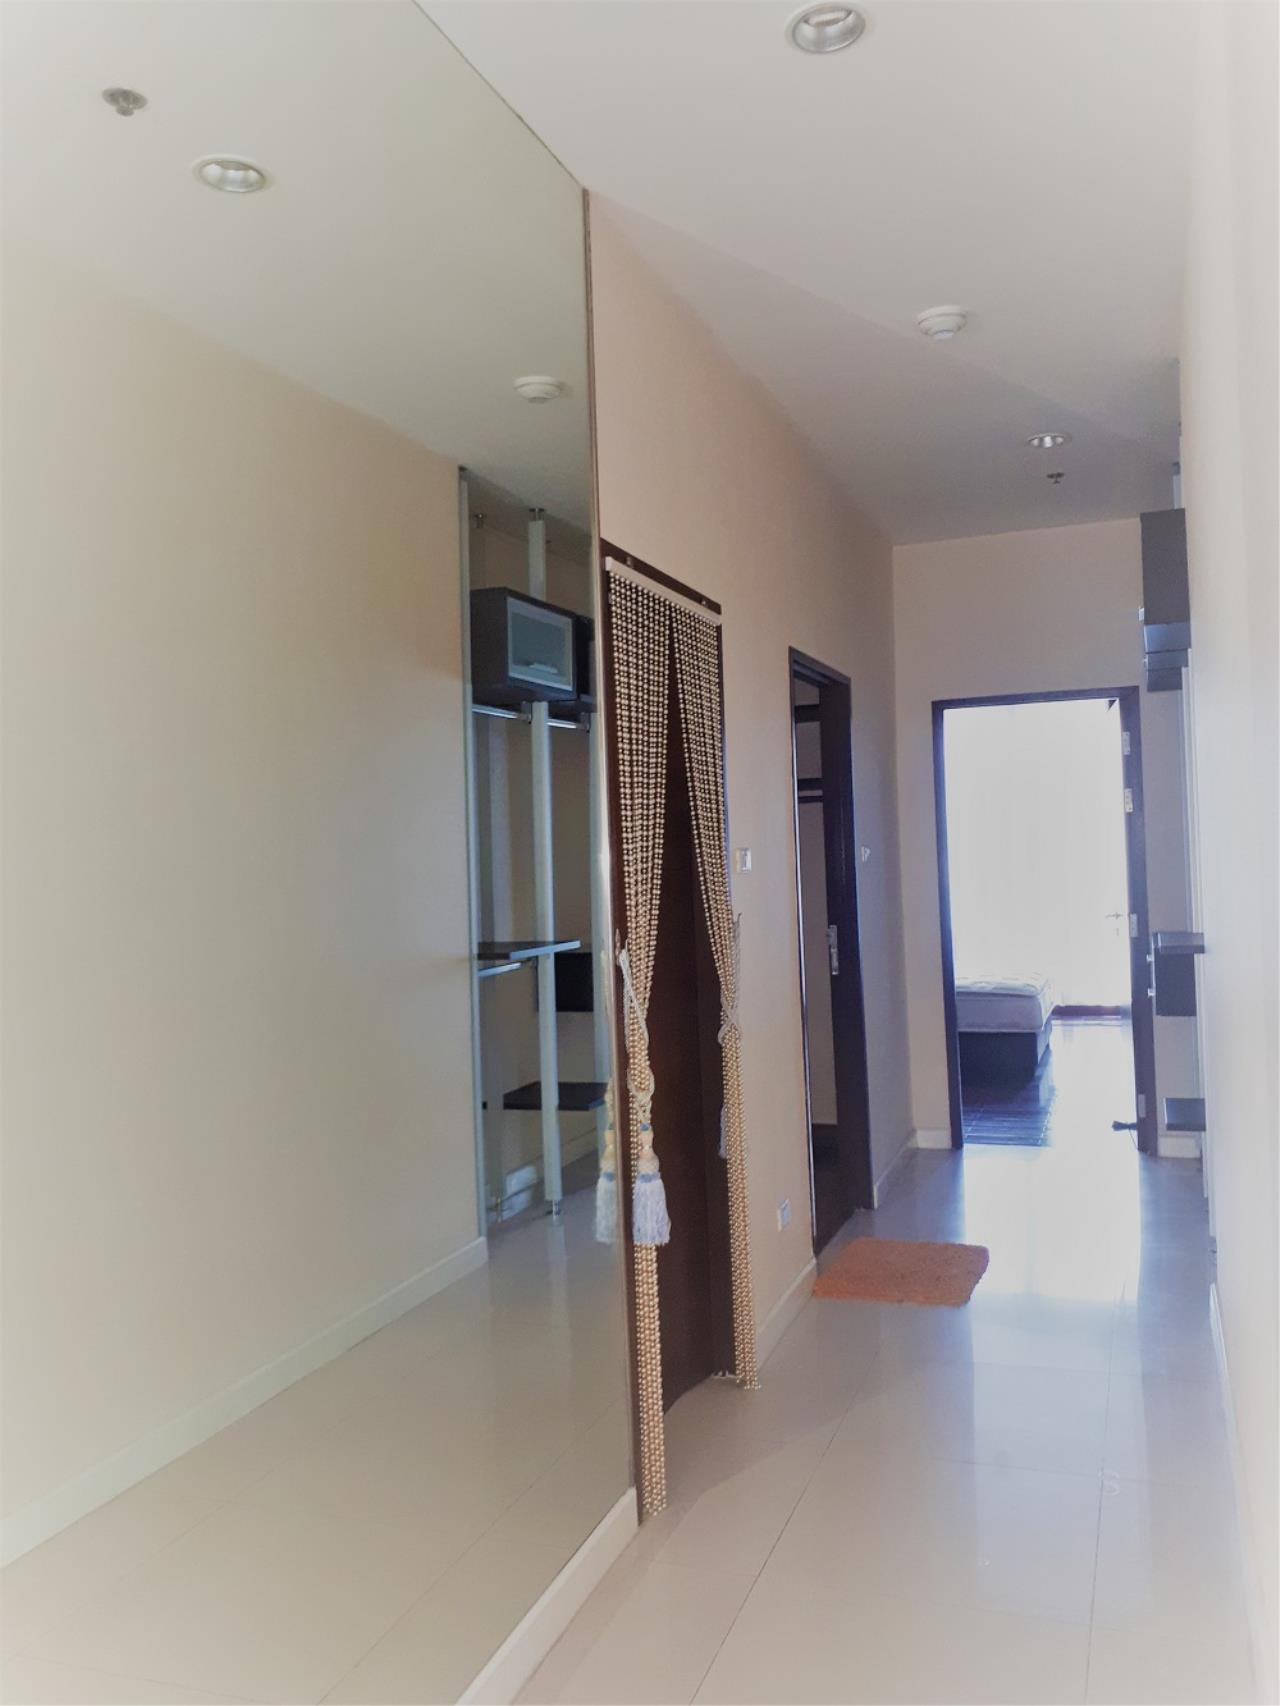 RE/MAX CondoDee Agency's Spacious 3 Bedrooms Condo @ Sukhumvit 11 10